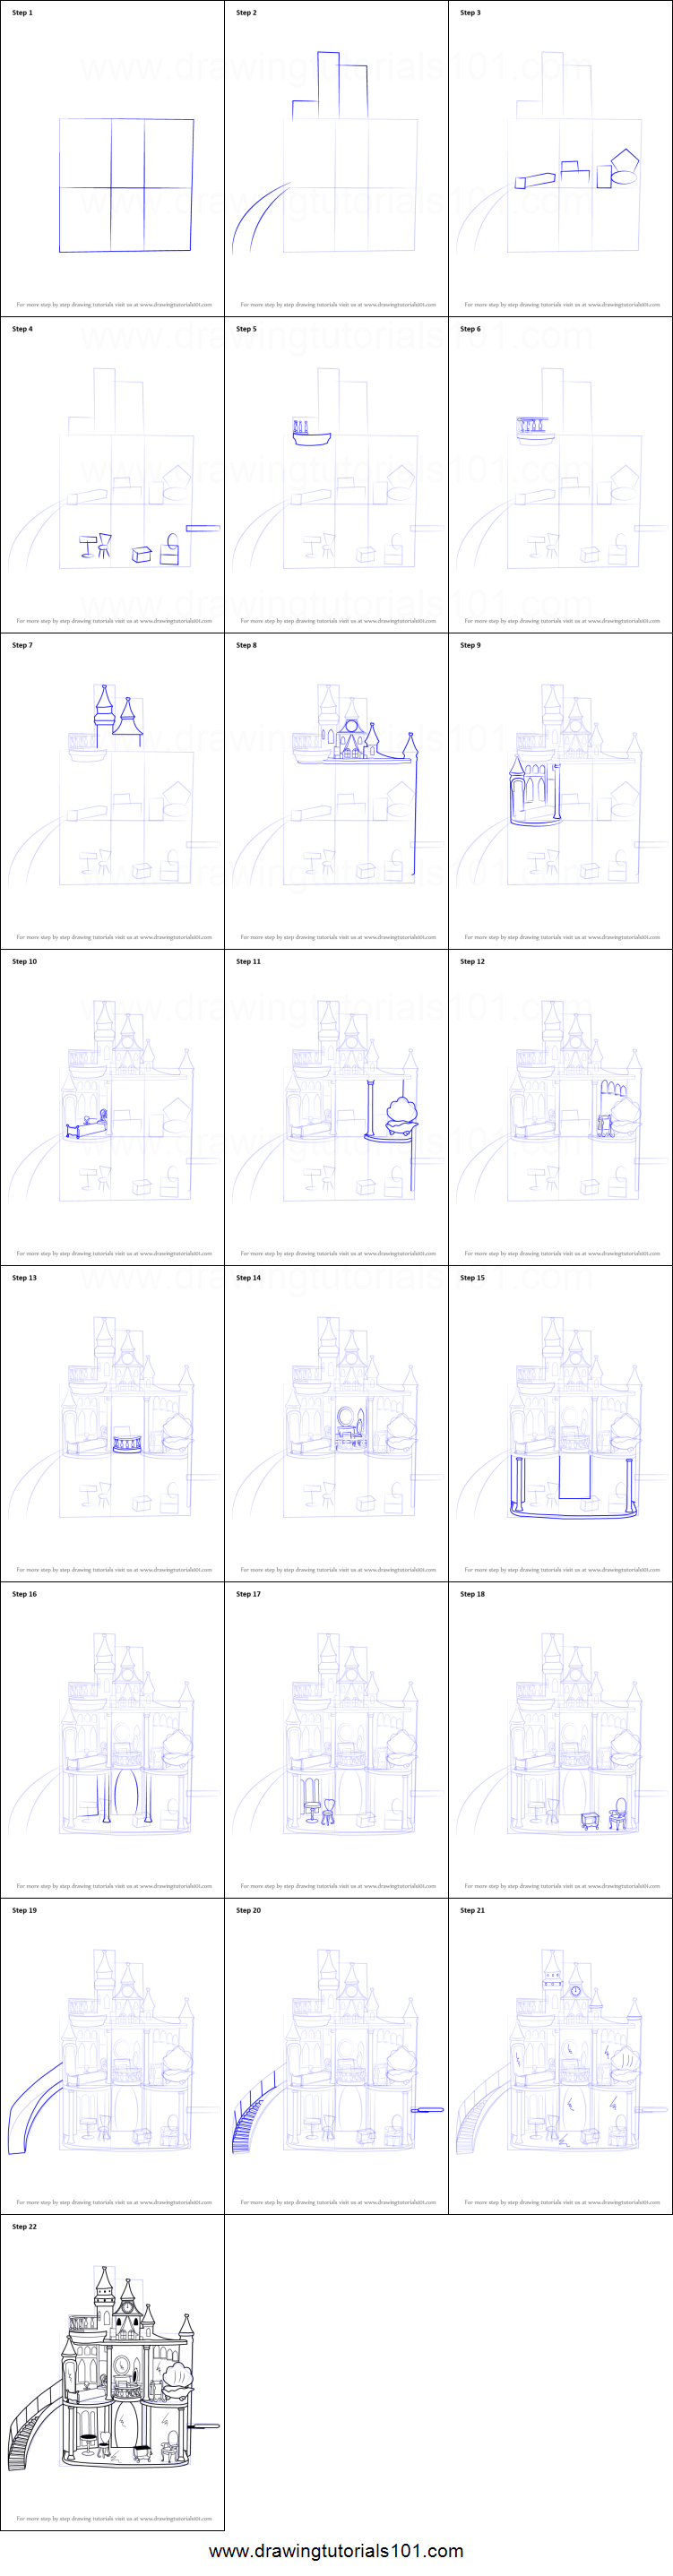 How To Draw Barbie Doll Castle Printable Step By